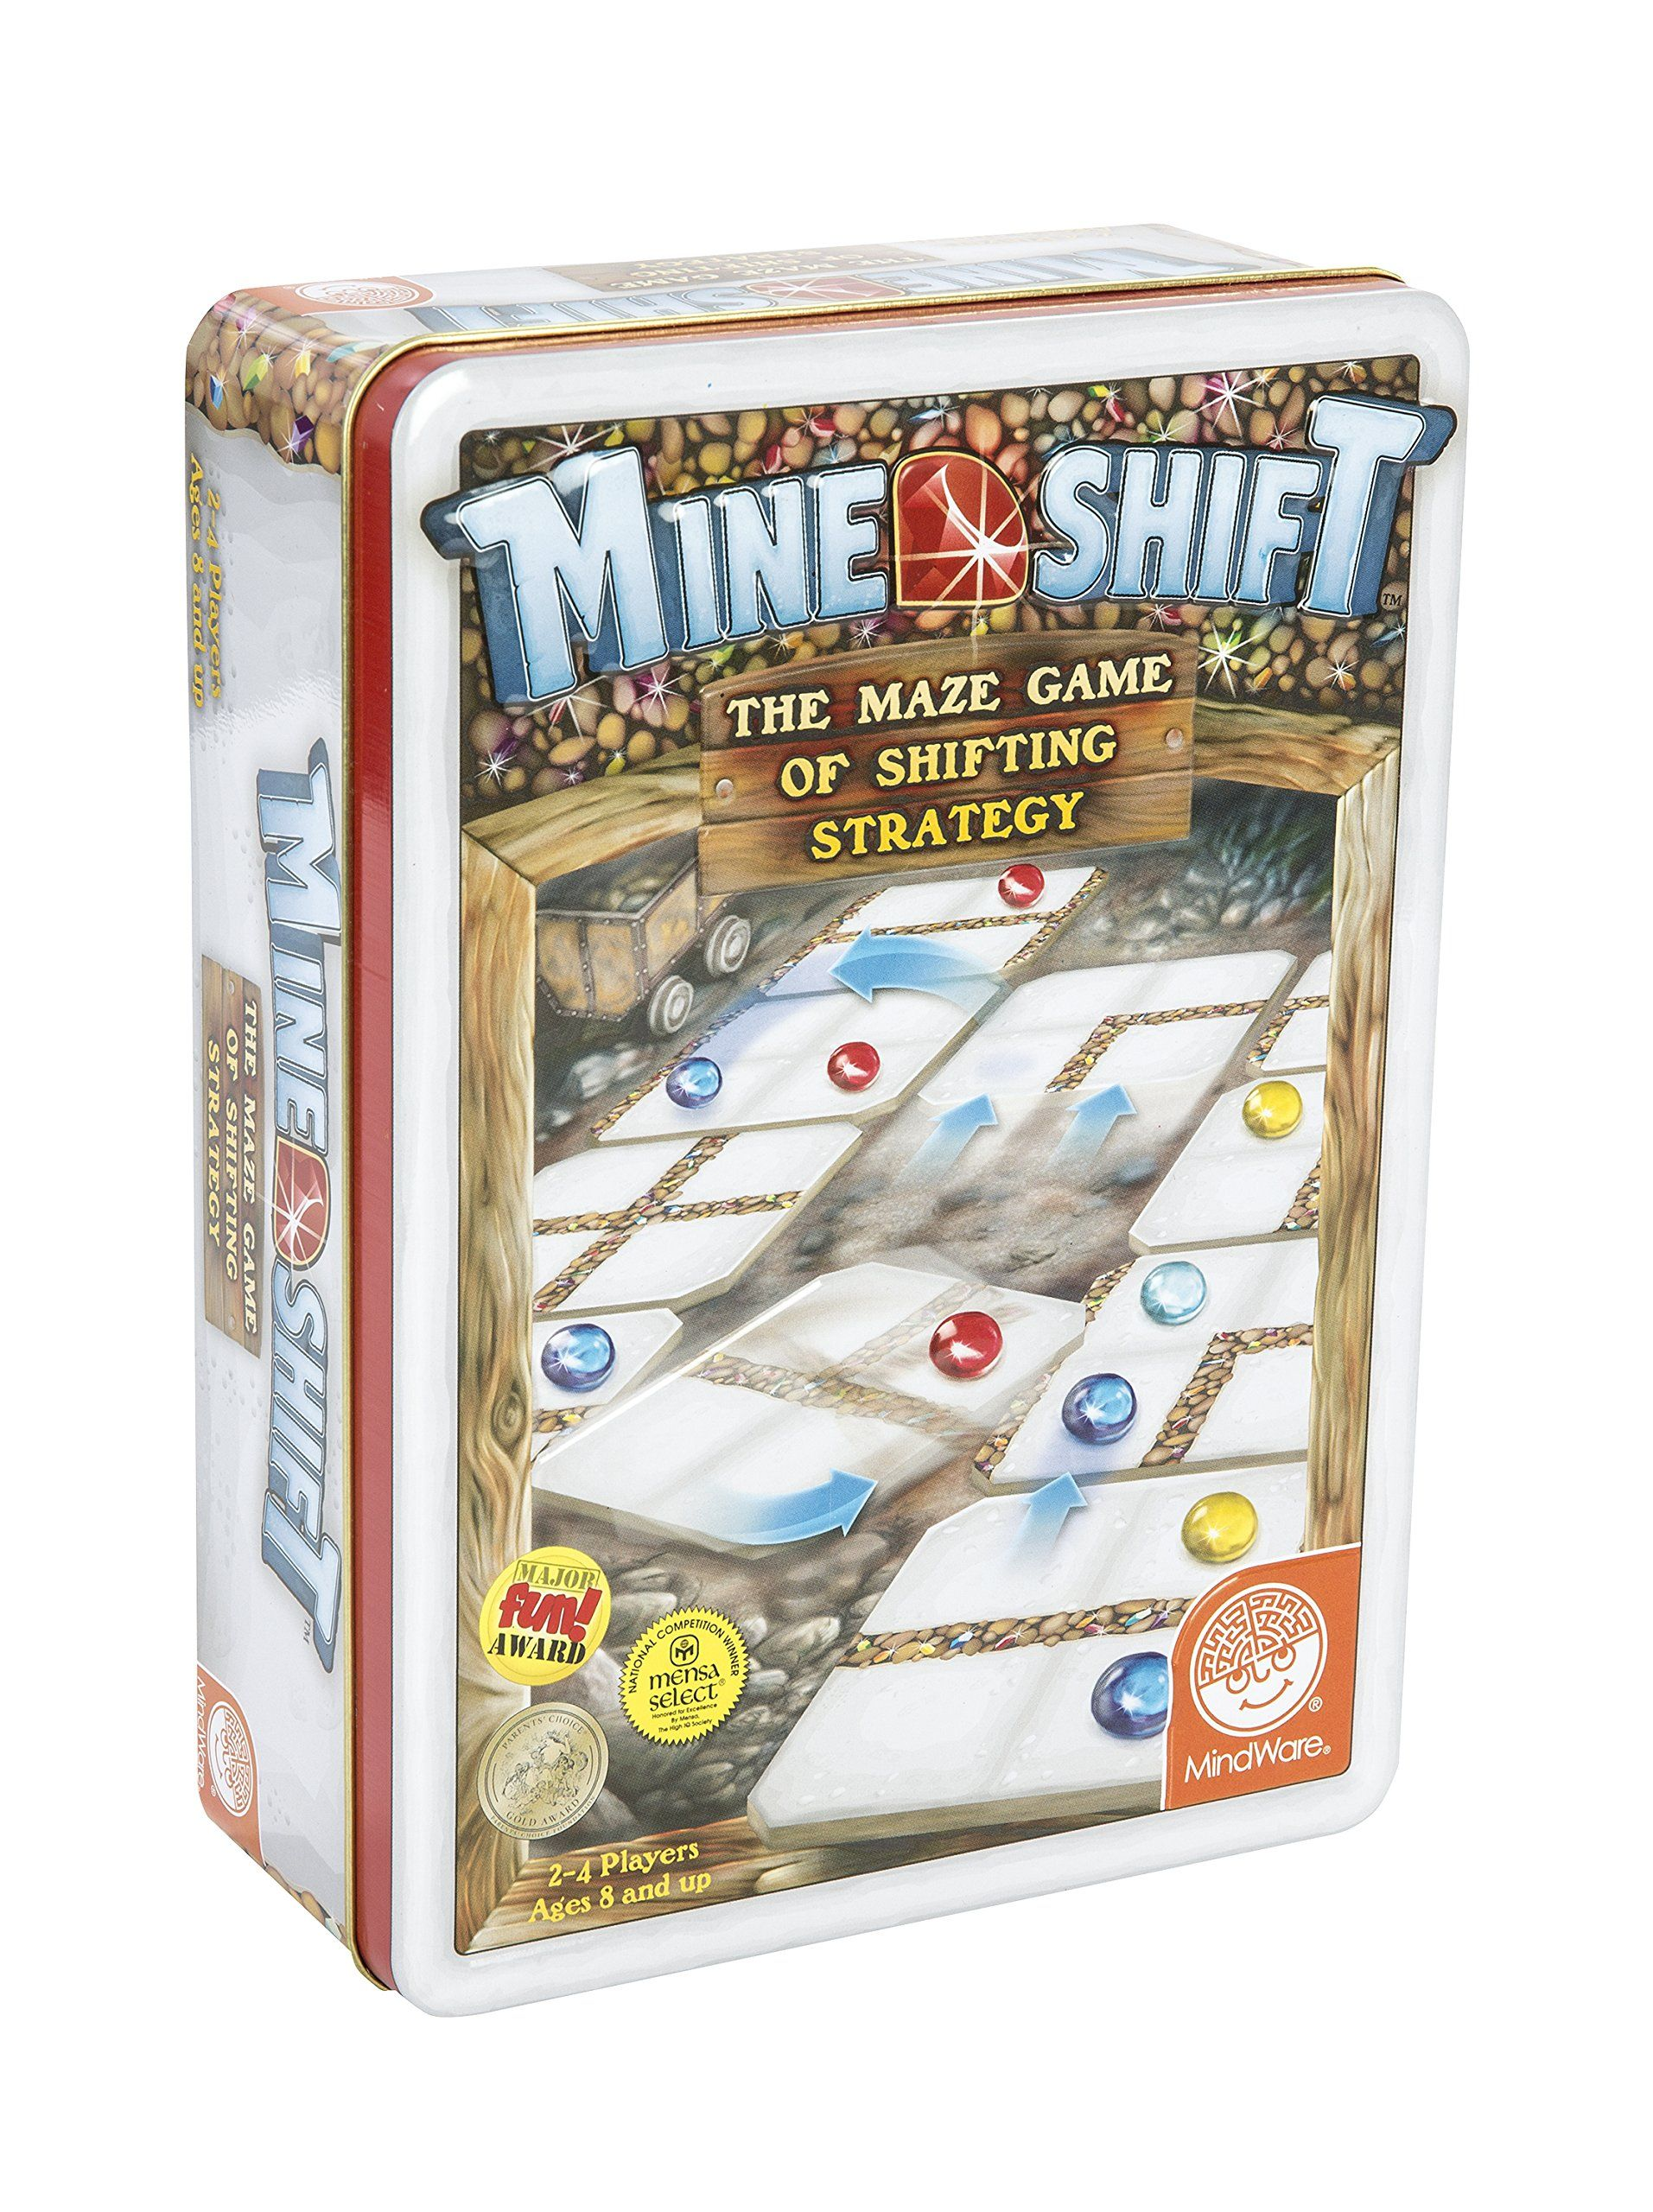 Mineshift 4 Player Game Games to buy, Games, Maze game